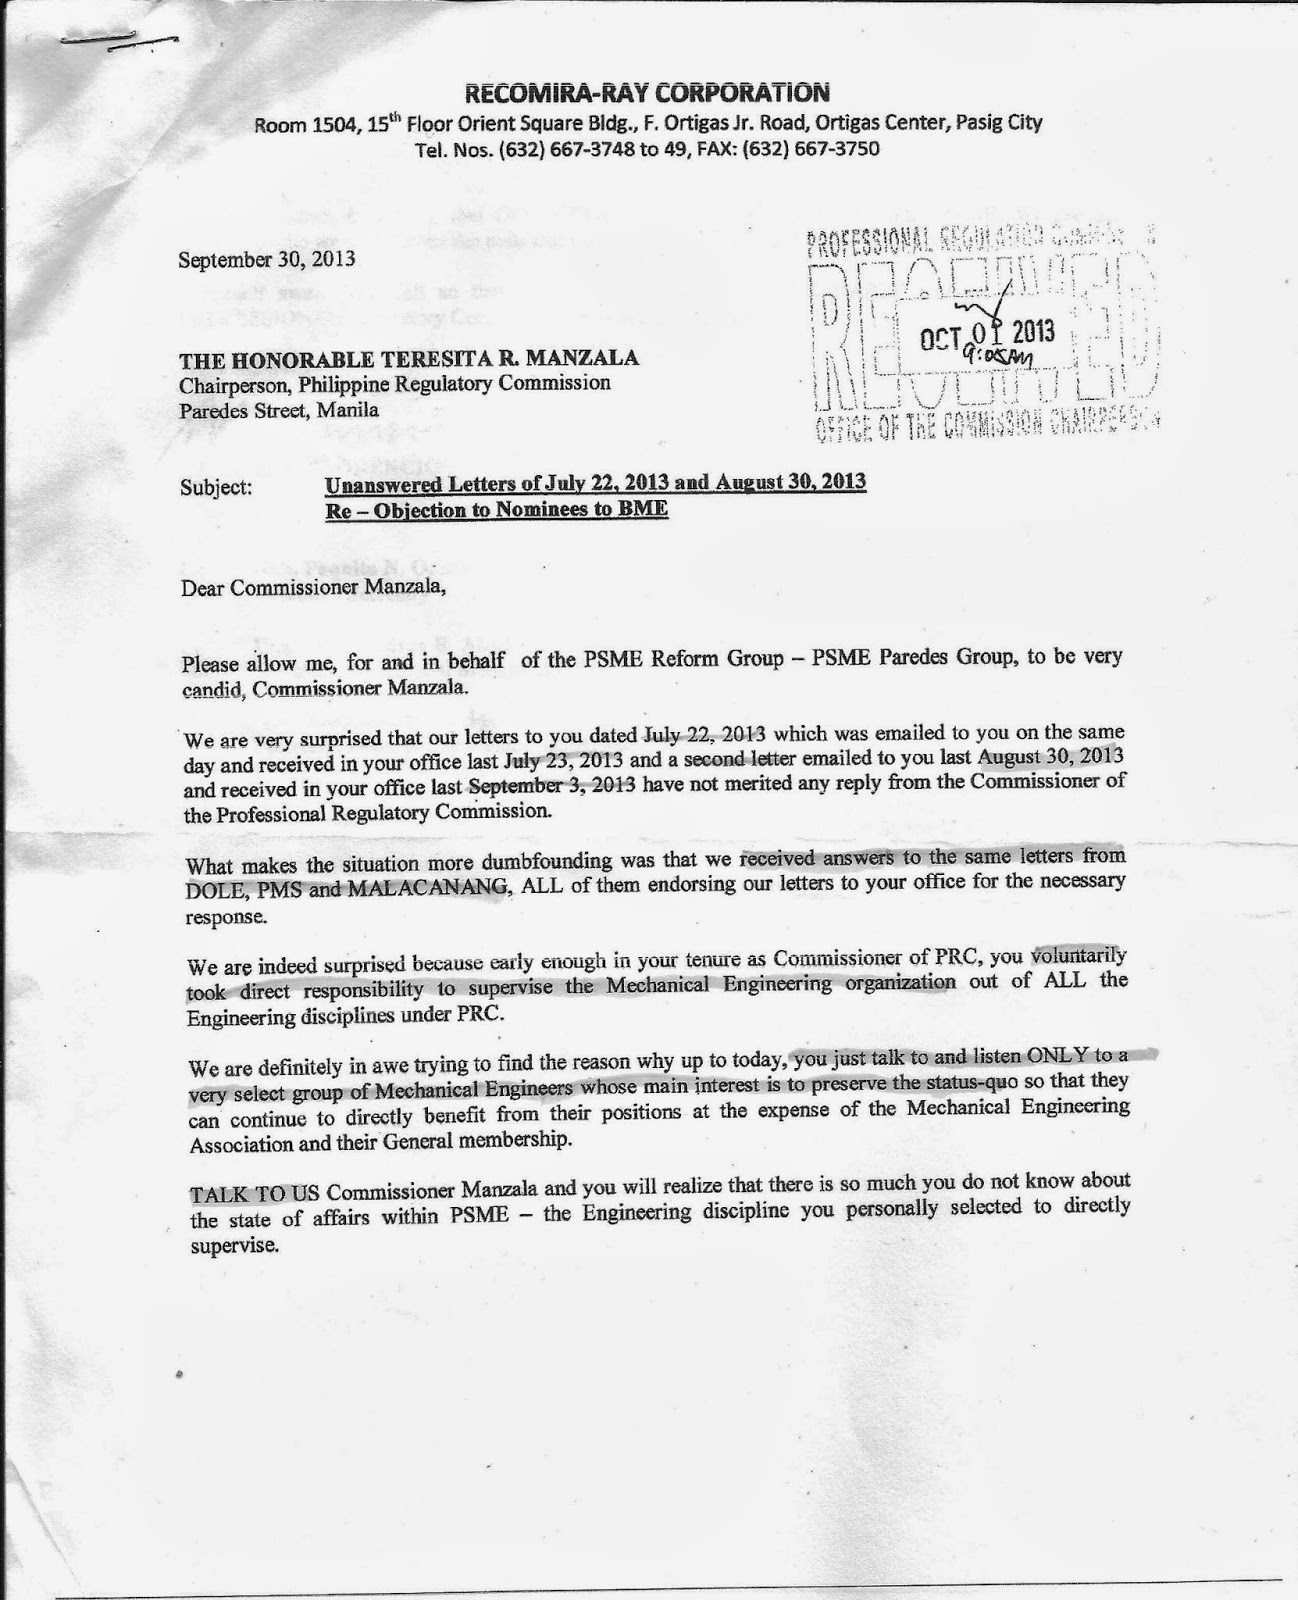 Mekaniko october 2013 raf ltr to hon trnzala re unanswered letters 72213 and 83013 re objection to nominees to bme fandeluxe Choice Image